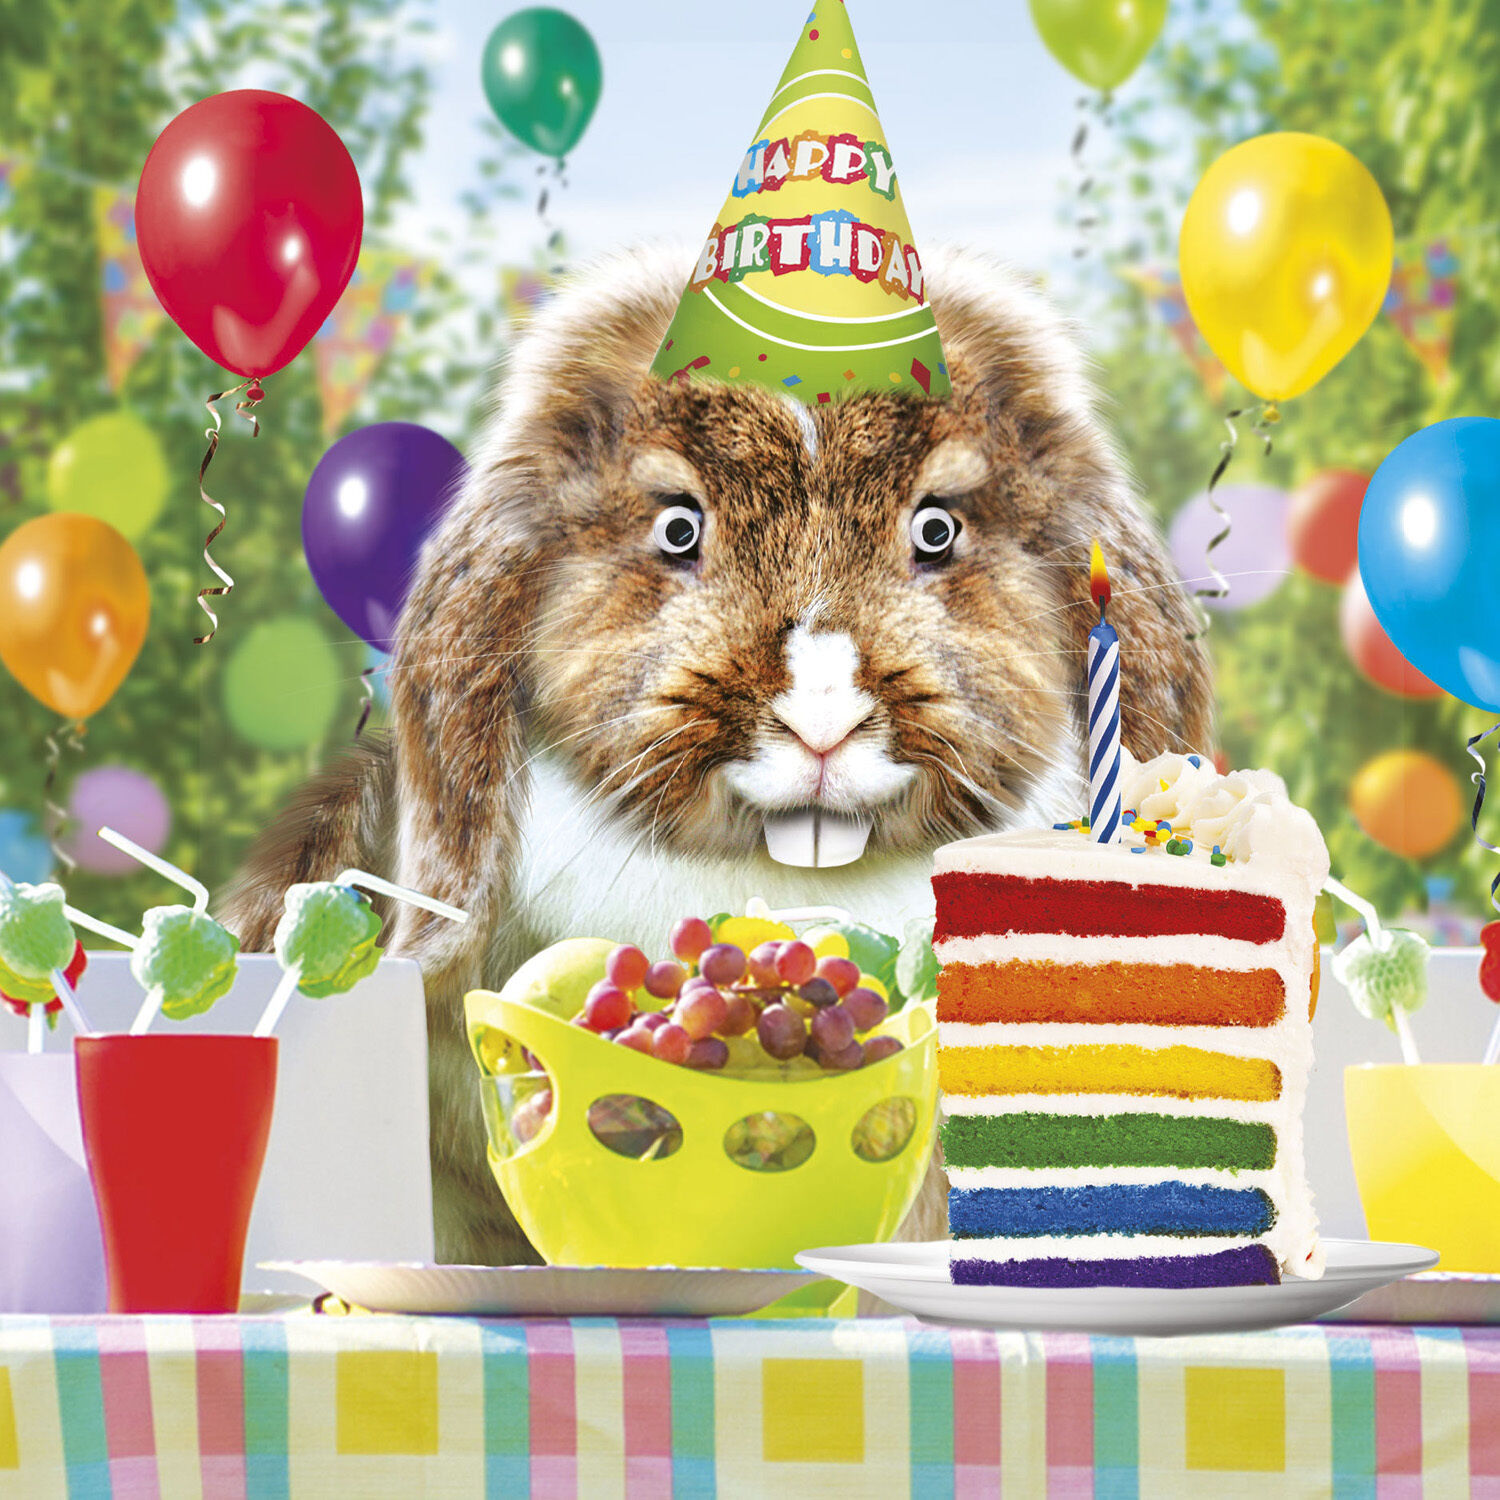 Hot Of The Press From New Georgie Lous Greeting Cards Range A Funny Rabbit In Birthday Hat Enjoying All His Favourite Treats